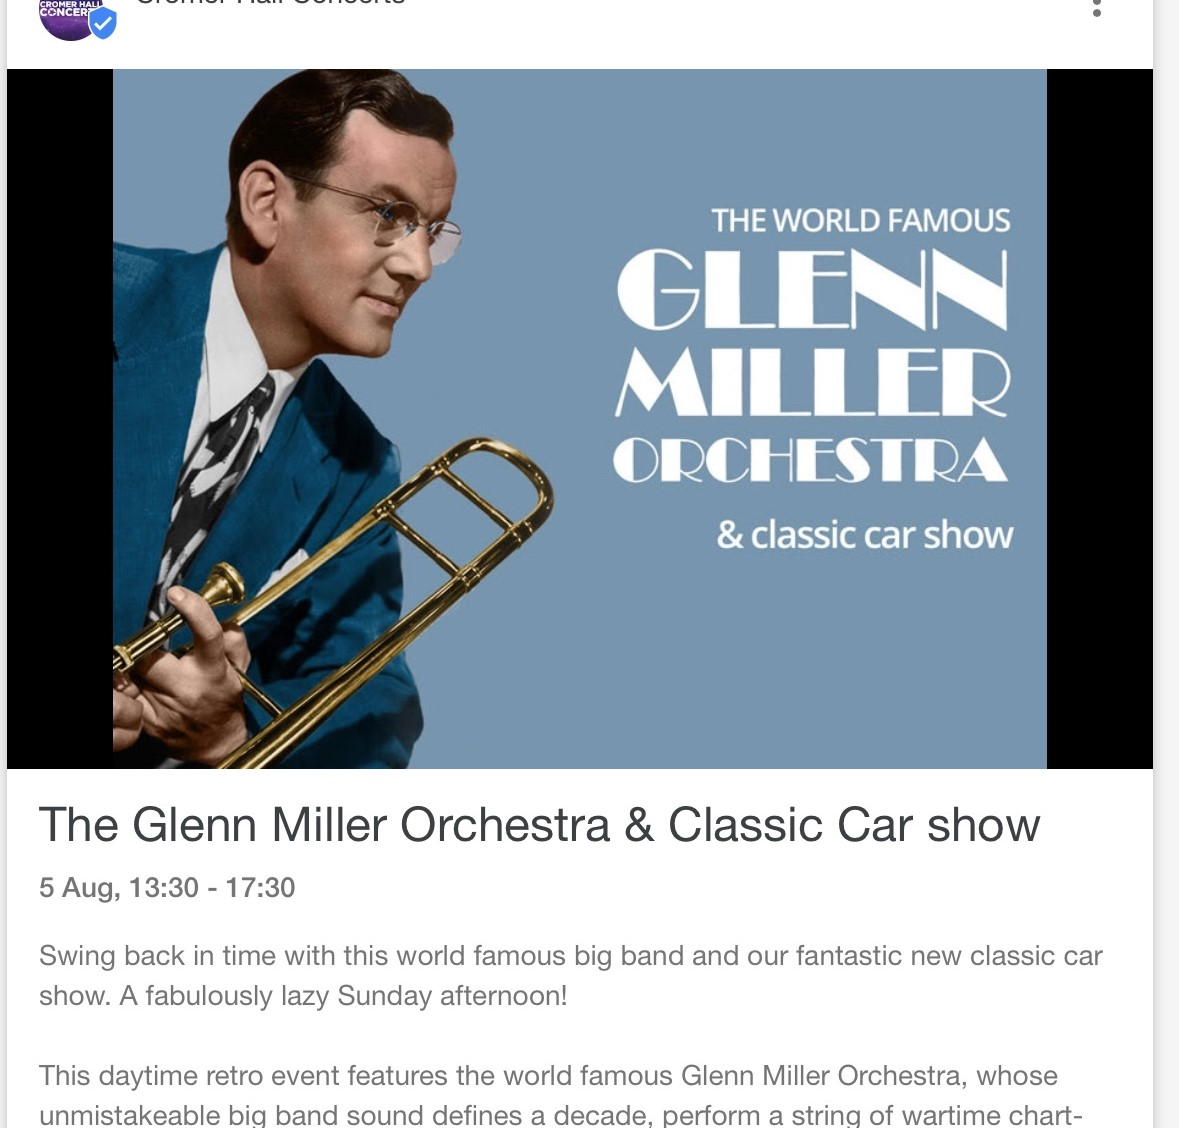 Wensum Group - Cromer Hall Classic Car & open air concert Glen Miller music orchestra.